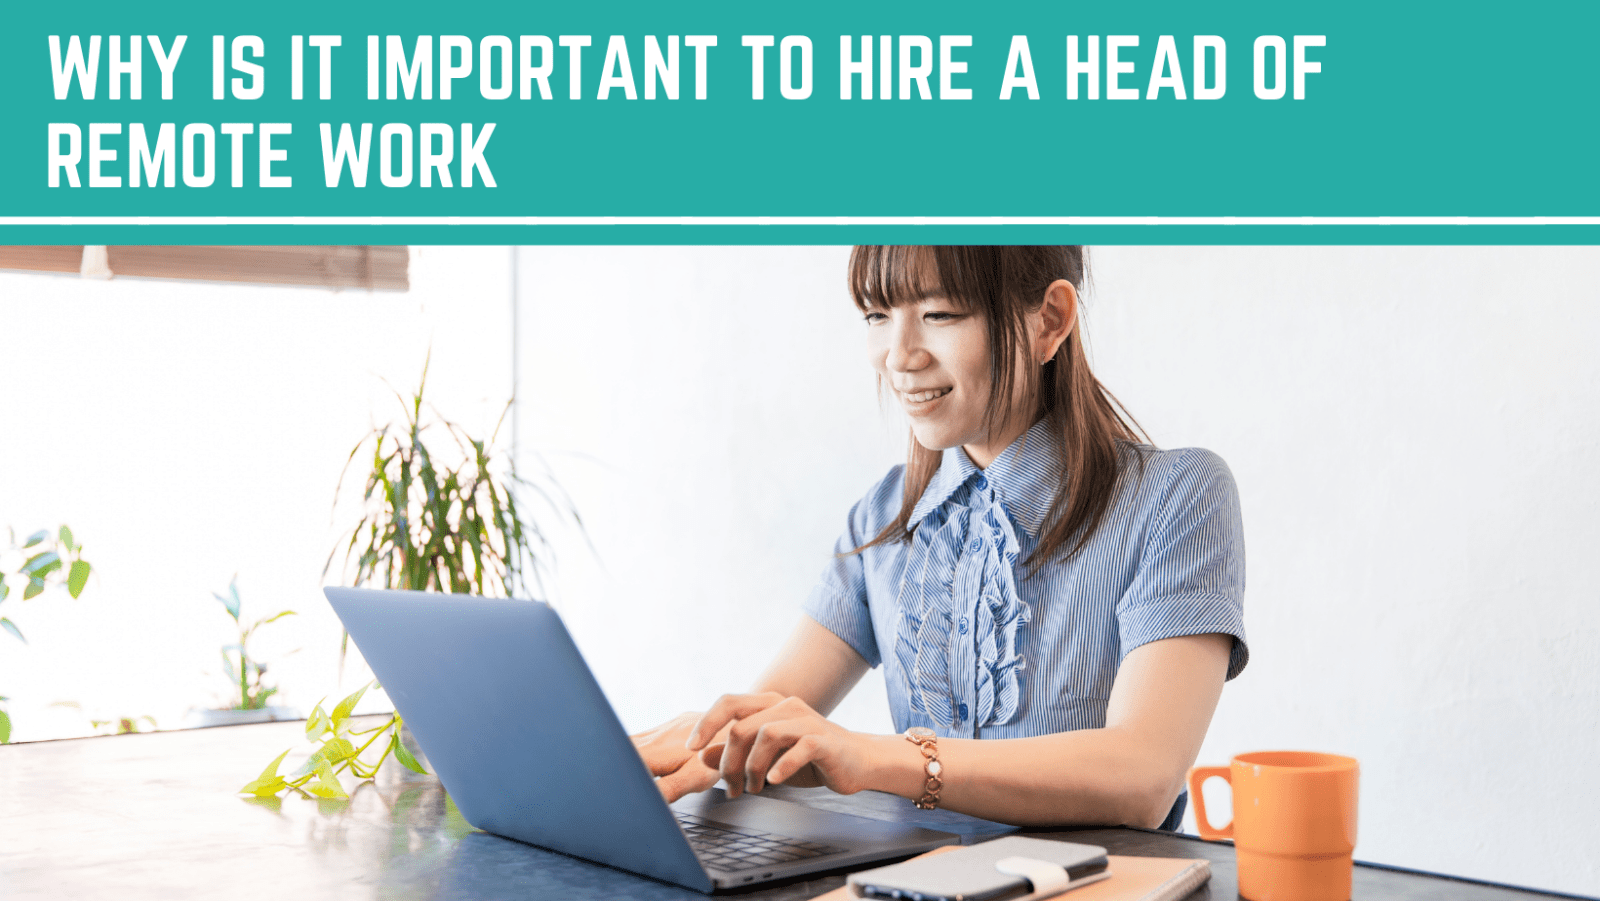 Why Is It Important To Hire A Head Of Remote . Why should you hire head of remote work. Hiring a Head of Remote Work